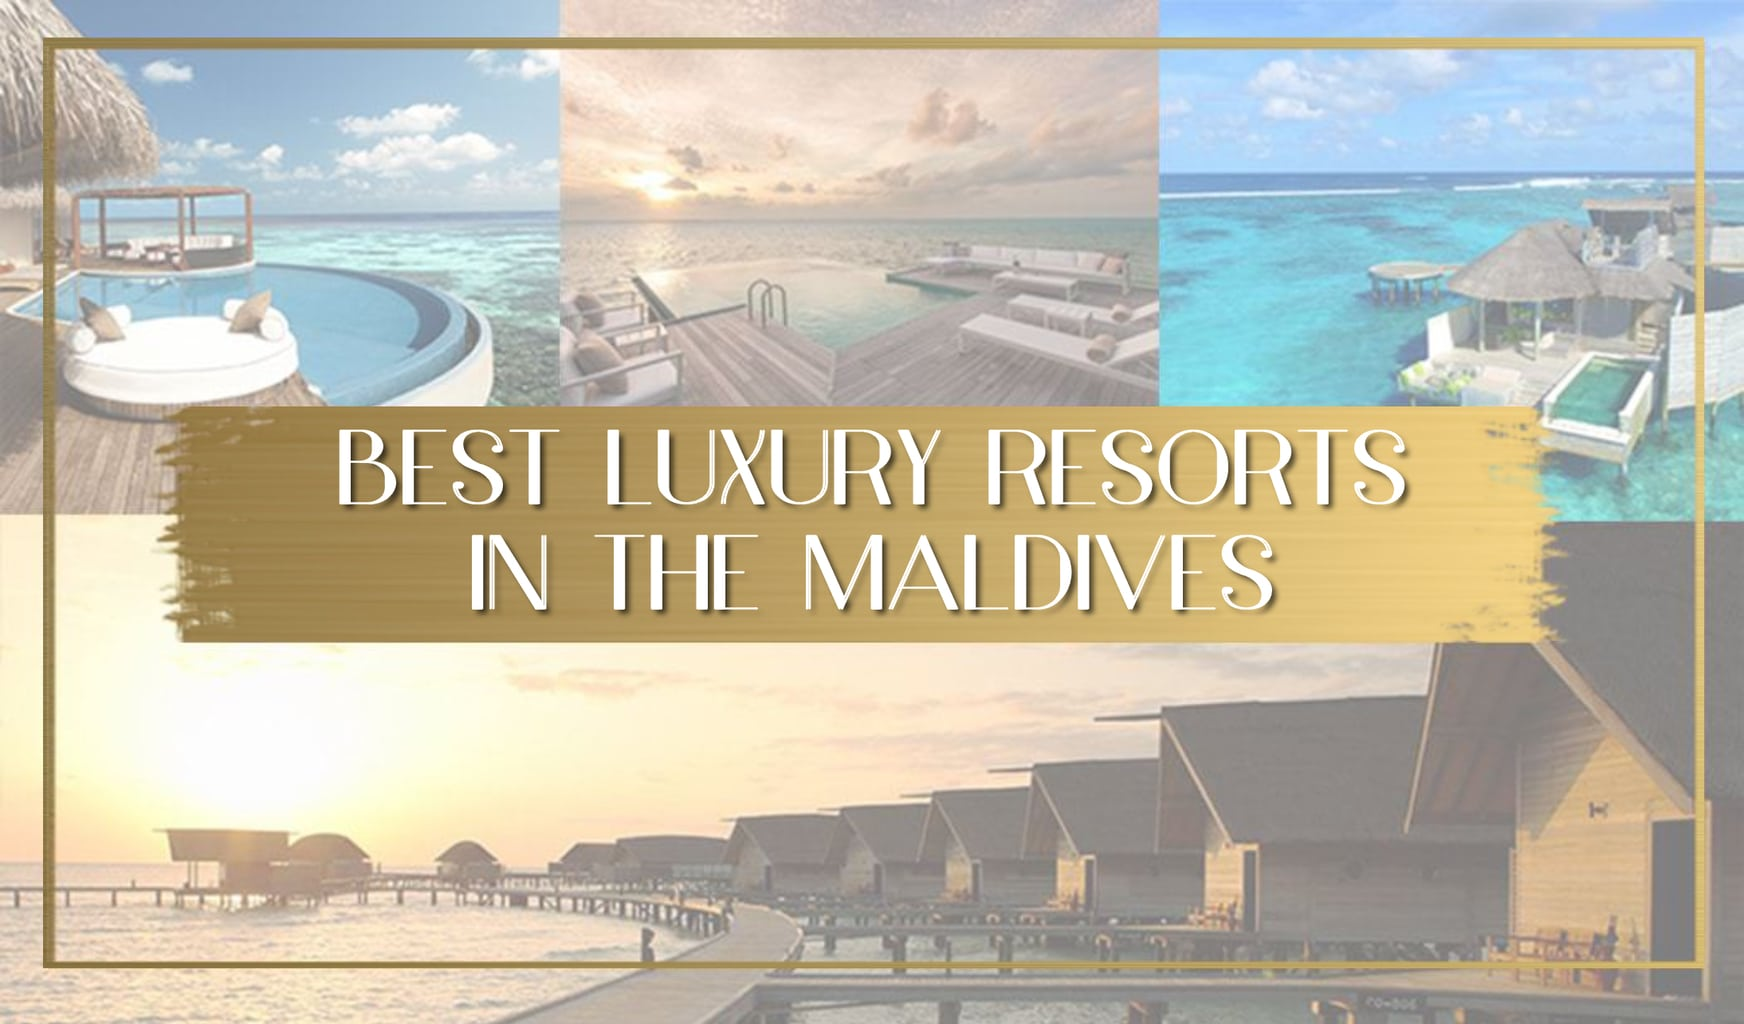 Best luxury resorts in the Maldives main